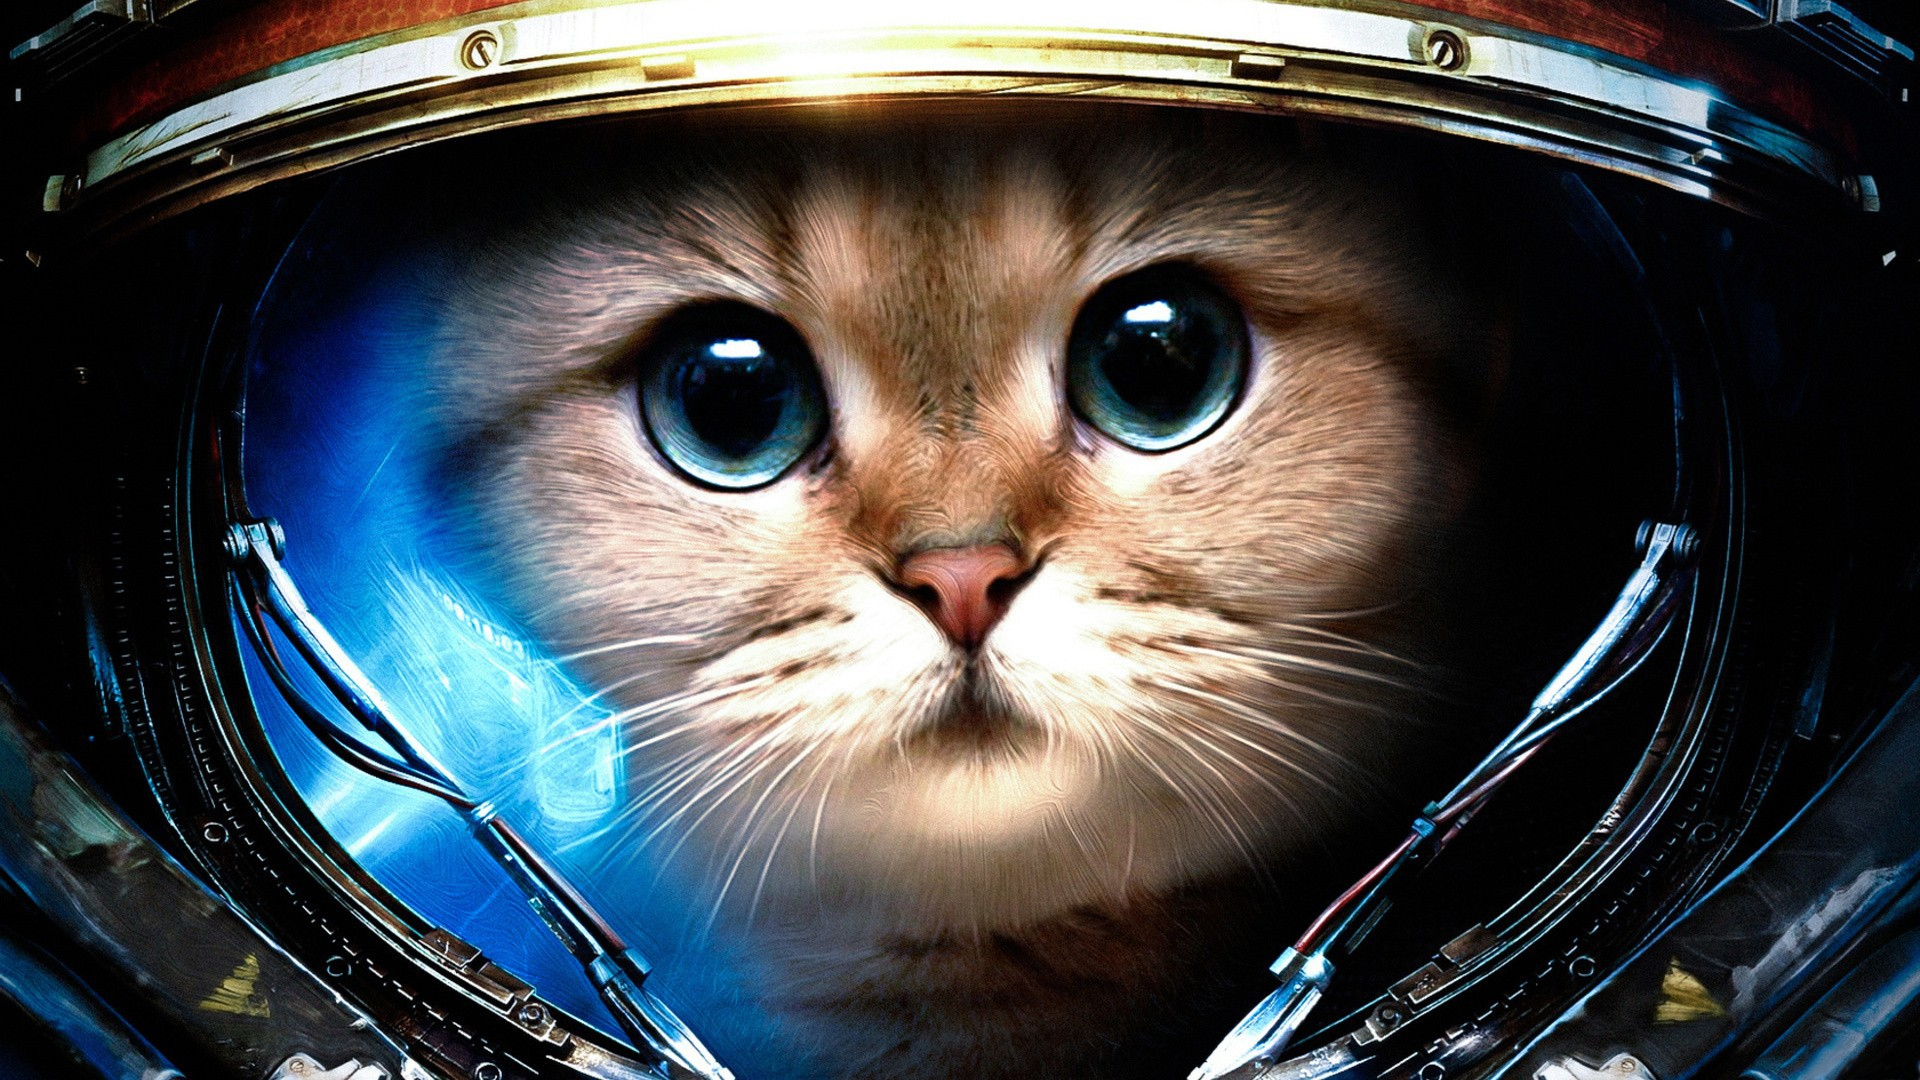 Cat astronaut wallpapers and images   wallpapers pictures photos 1920x1080